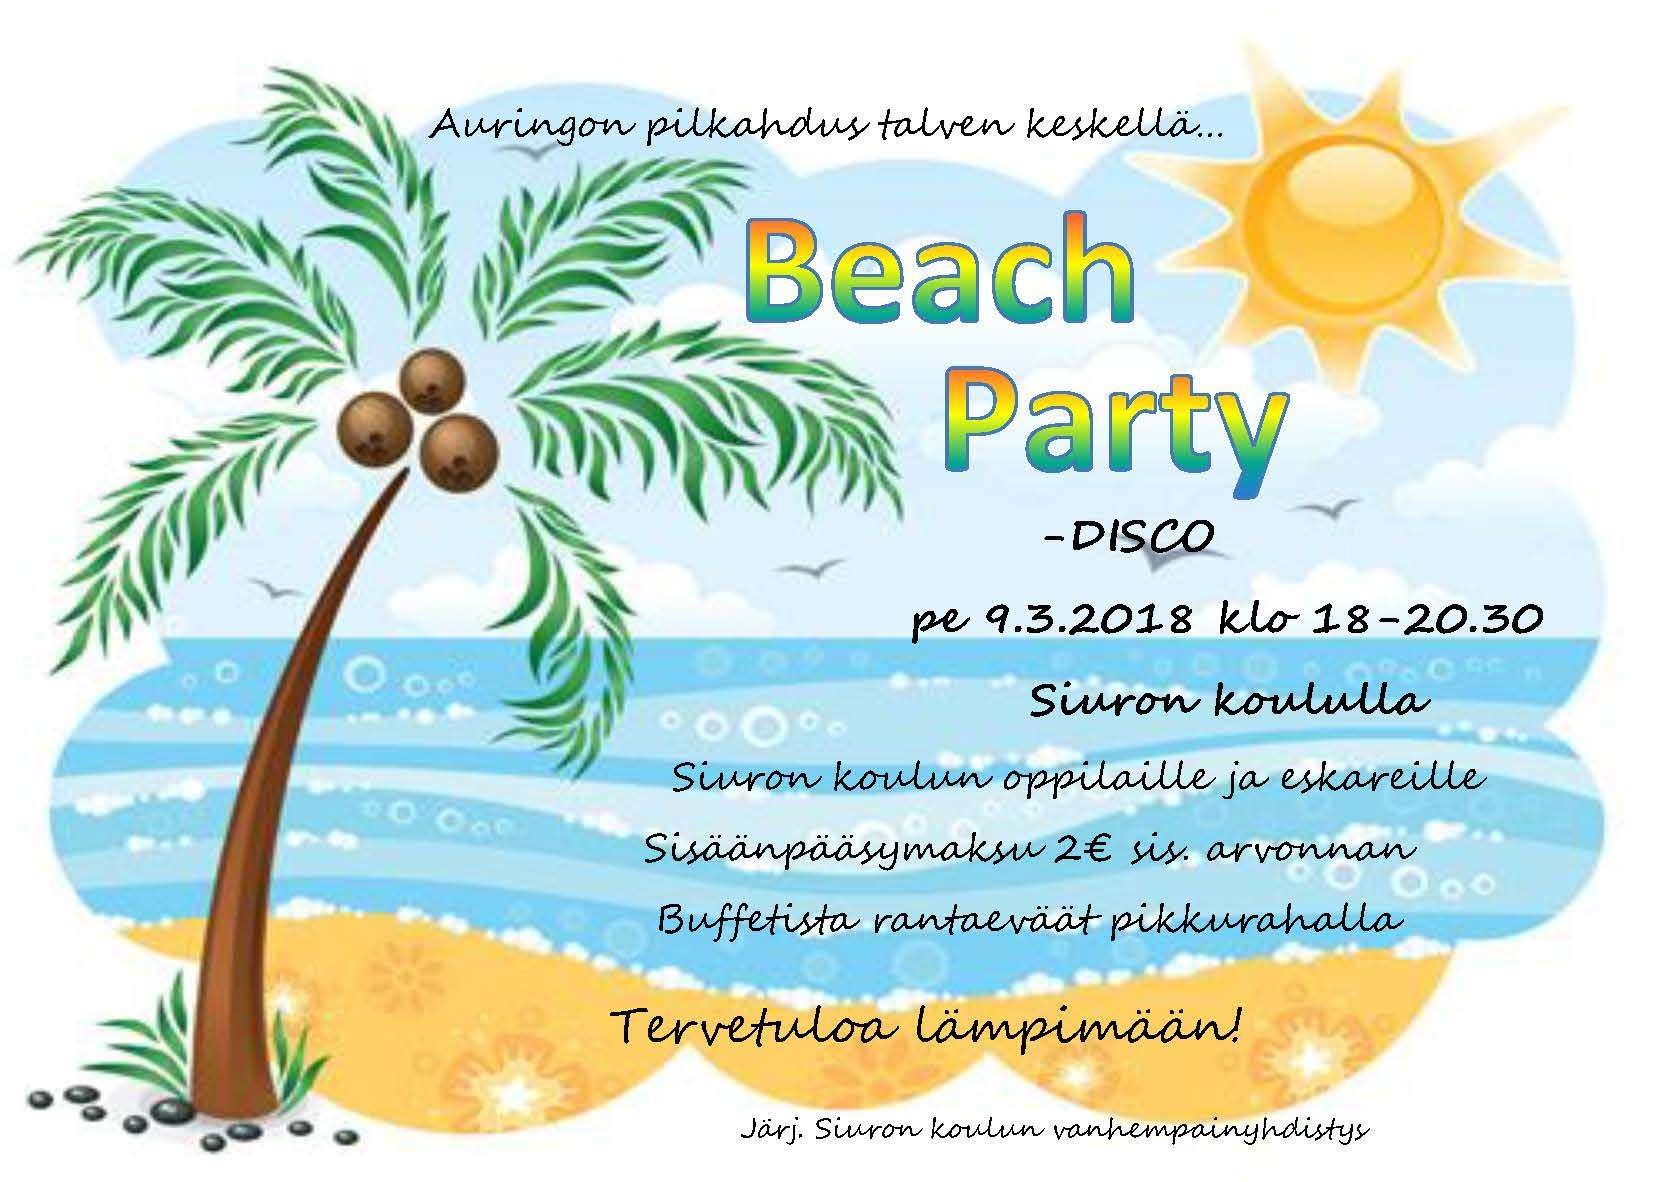 Beach Party kutsu